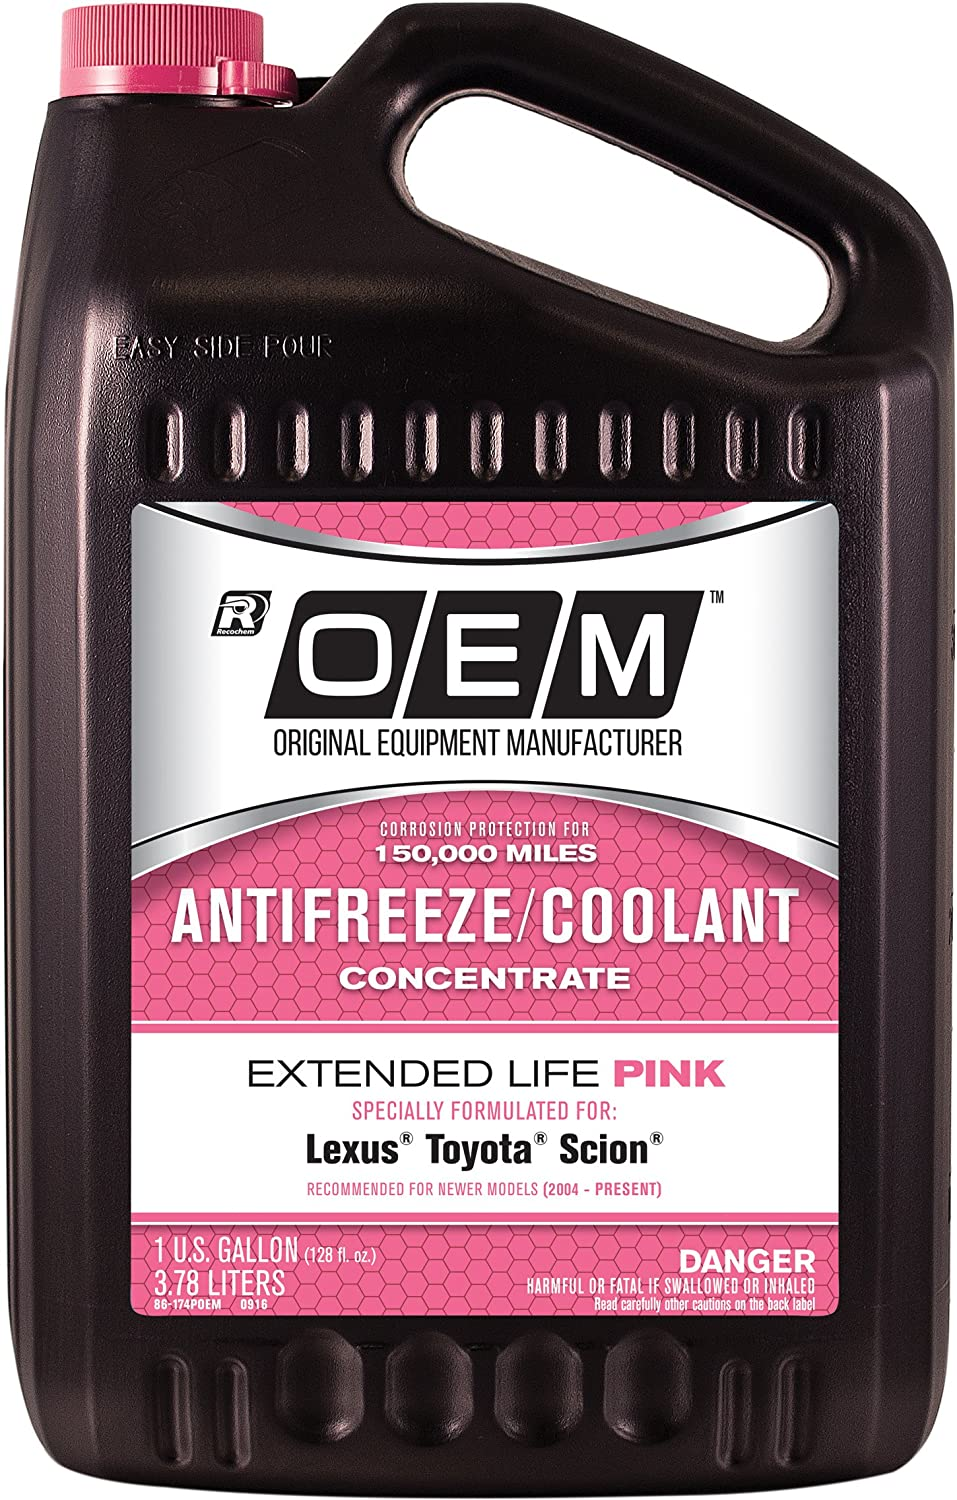 Oem Recochem 86 174poem Pink Premium Antifreeze Acura Engine Coolant Concentrate Extended Life 1 Gallon Pack Automotive